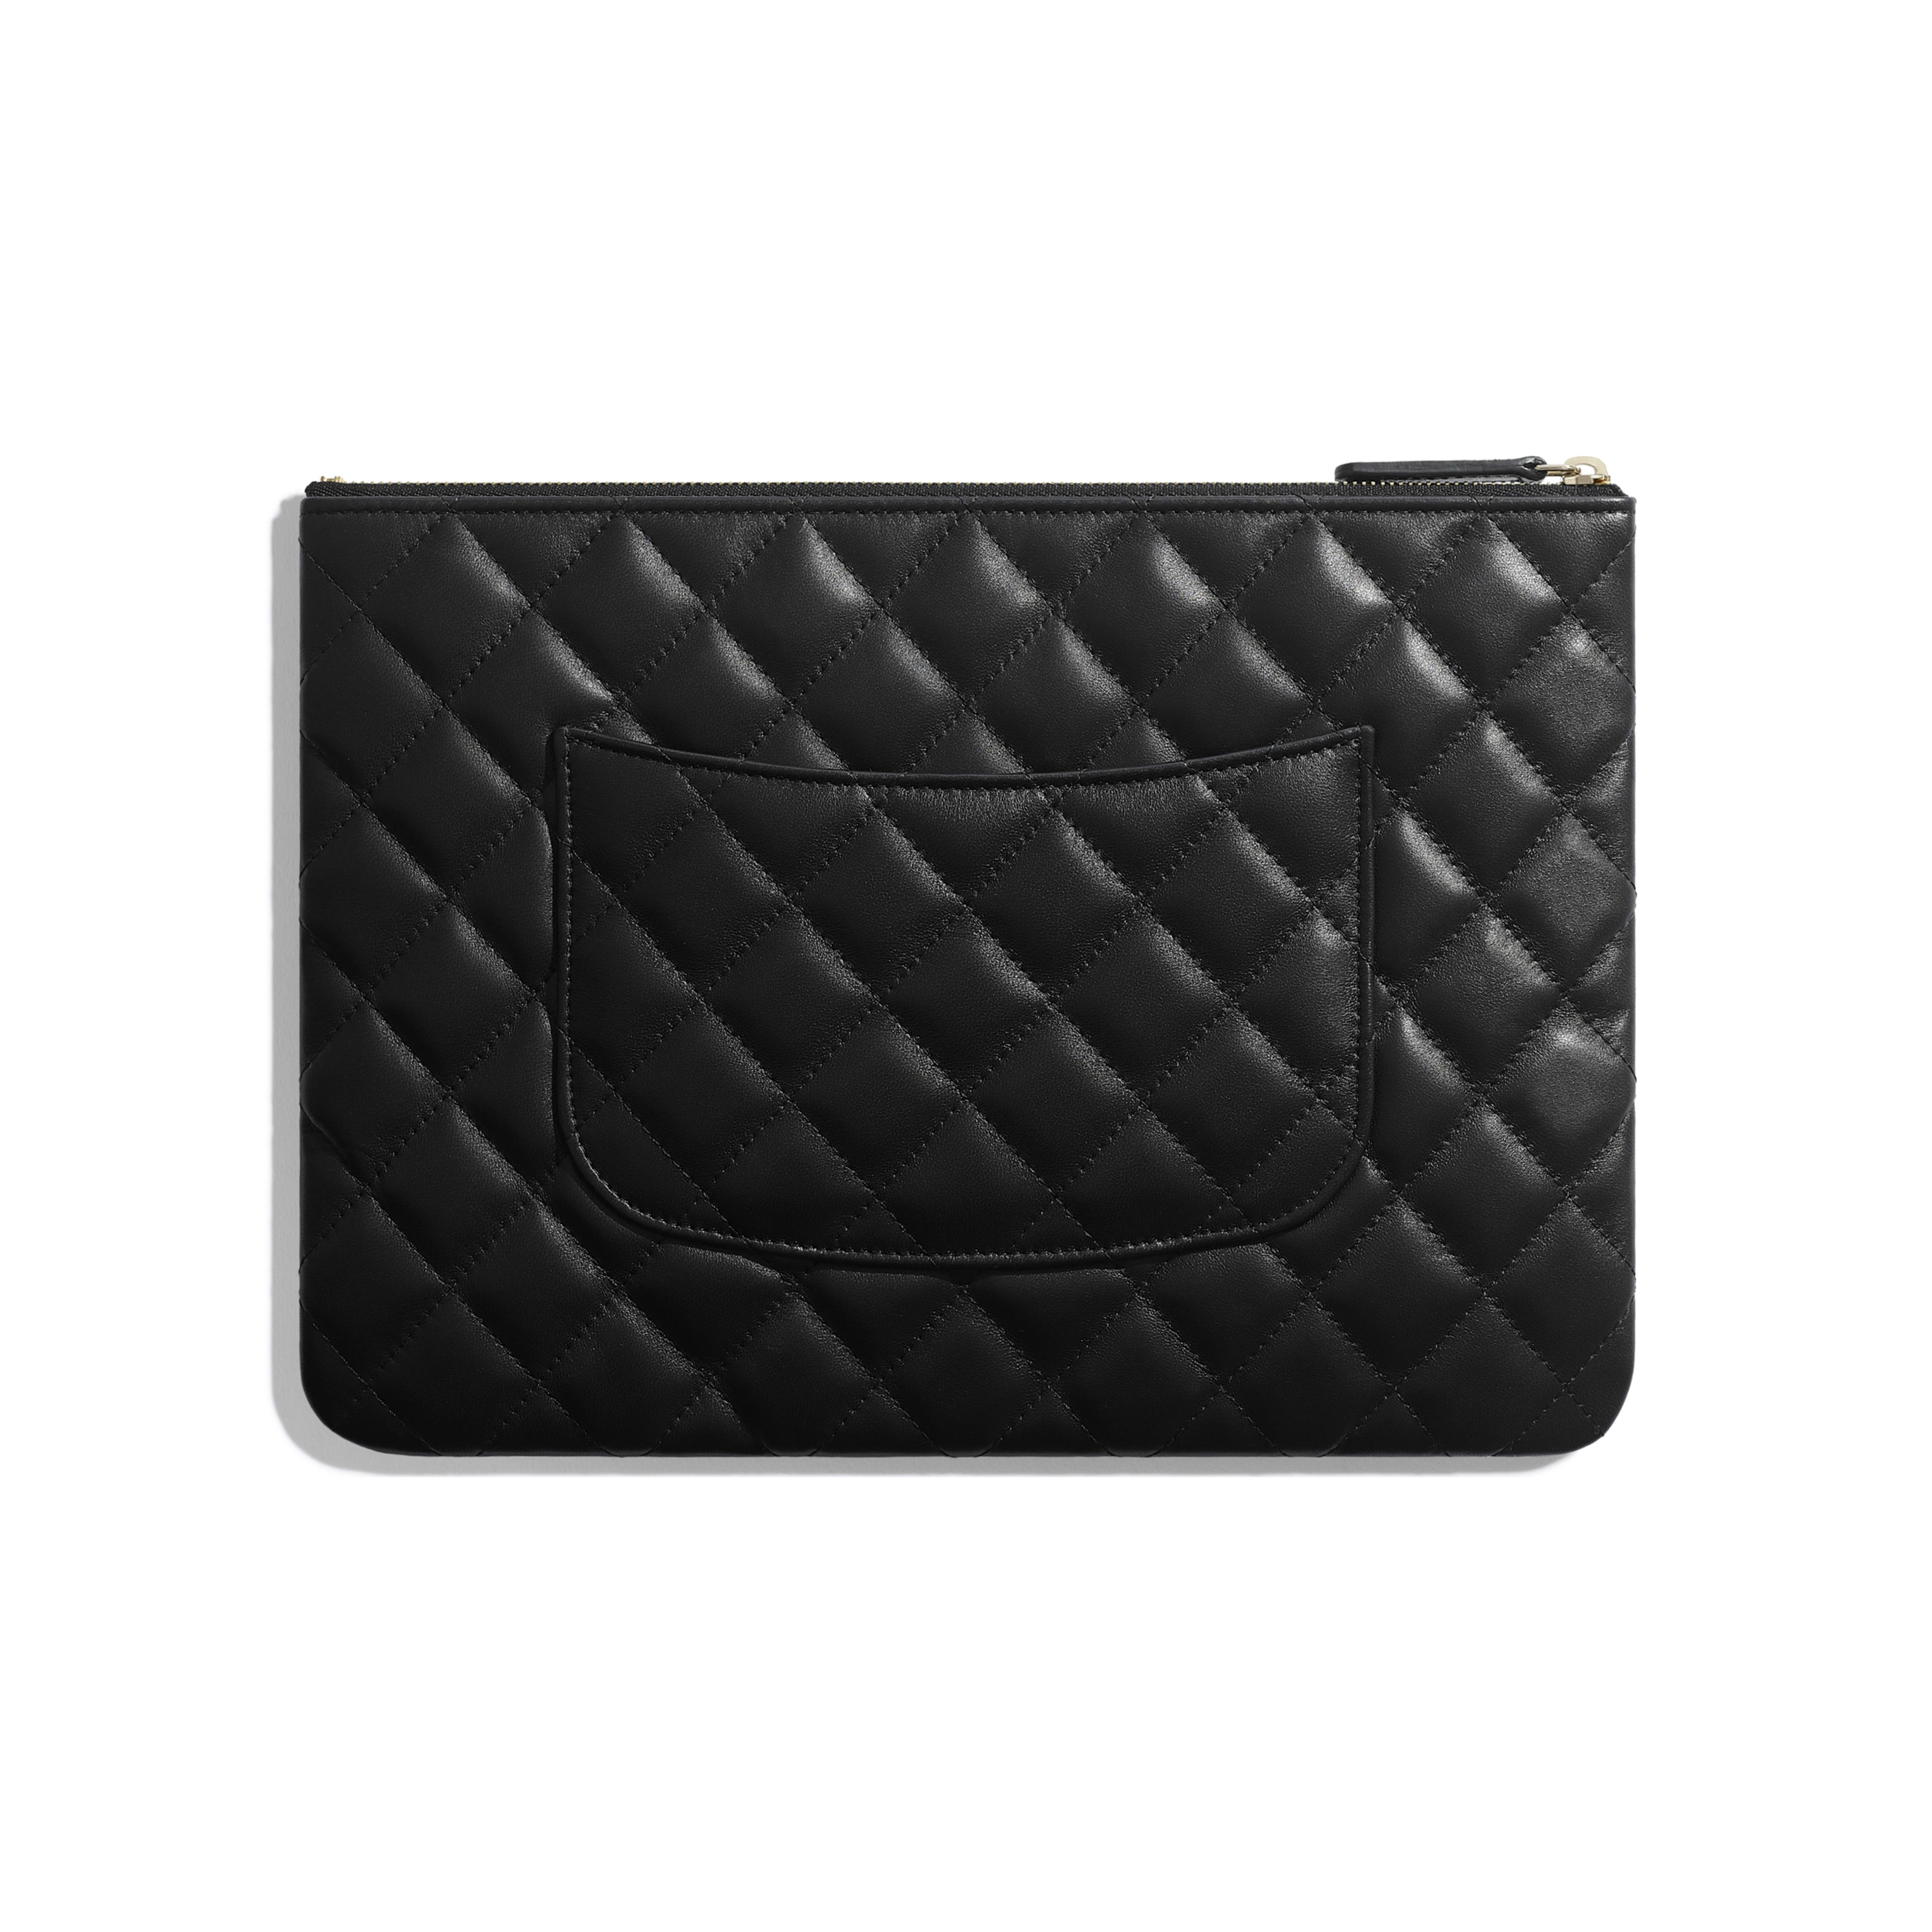 Pouch - Black - Lambskin - Alternative view - see full sized version